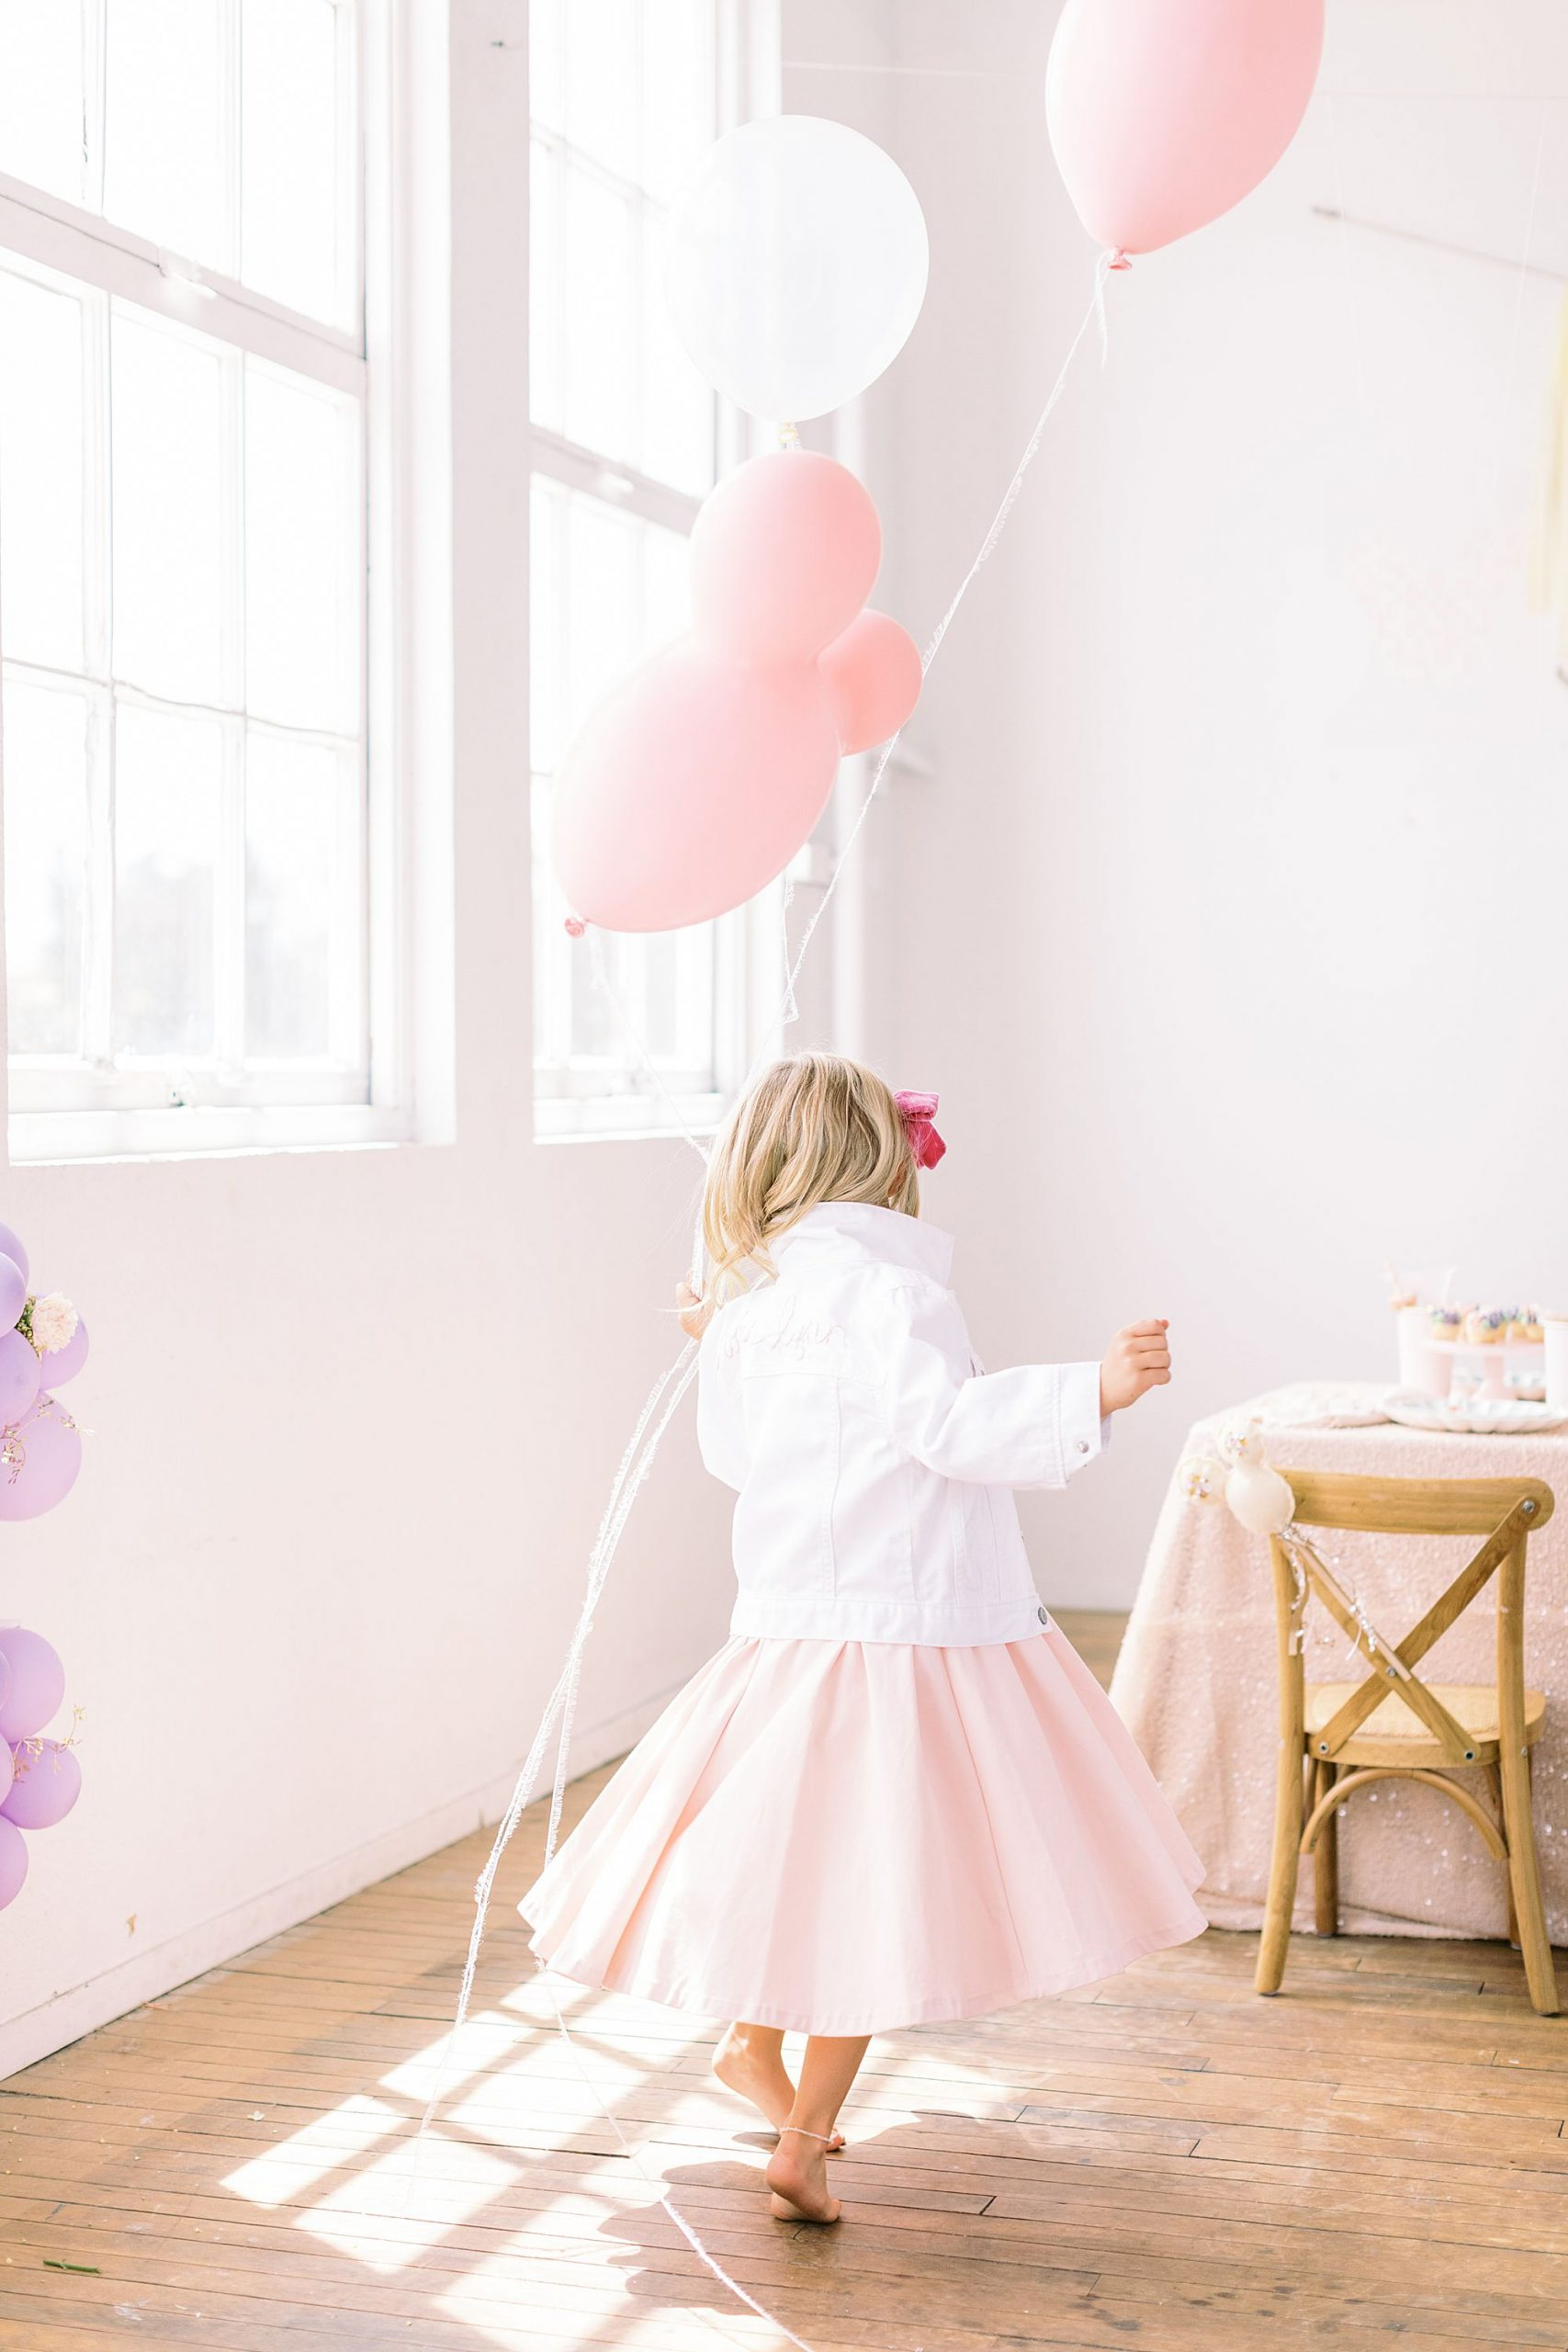 Vintage Disney Birthday Party for Princess Nora's Fourth Birthday - Featured on 100 Layer Cake - Ashley Baumgartner - Parker Grace Events_0043.jpg